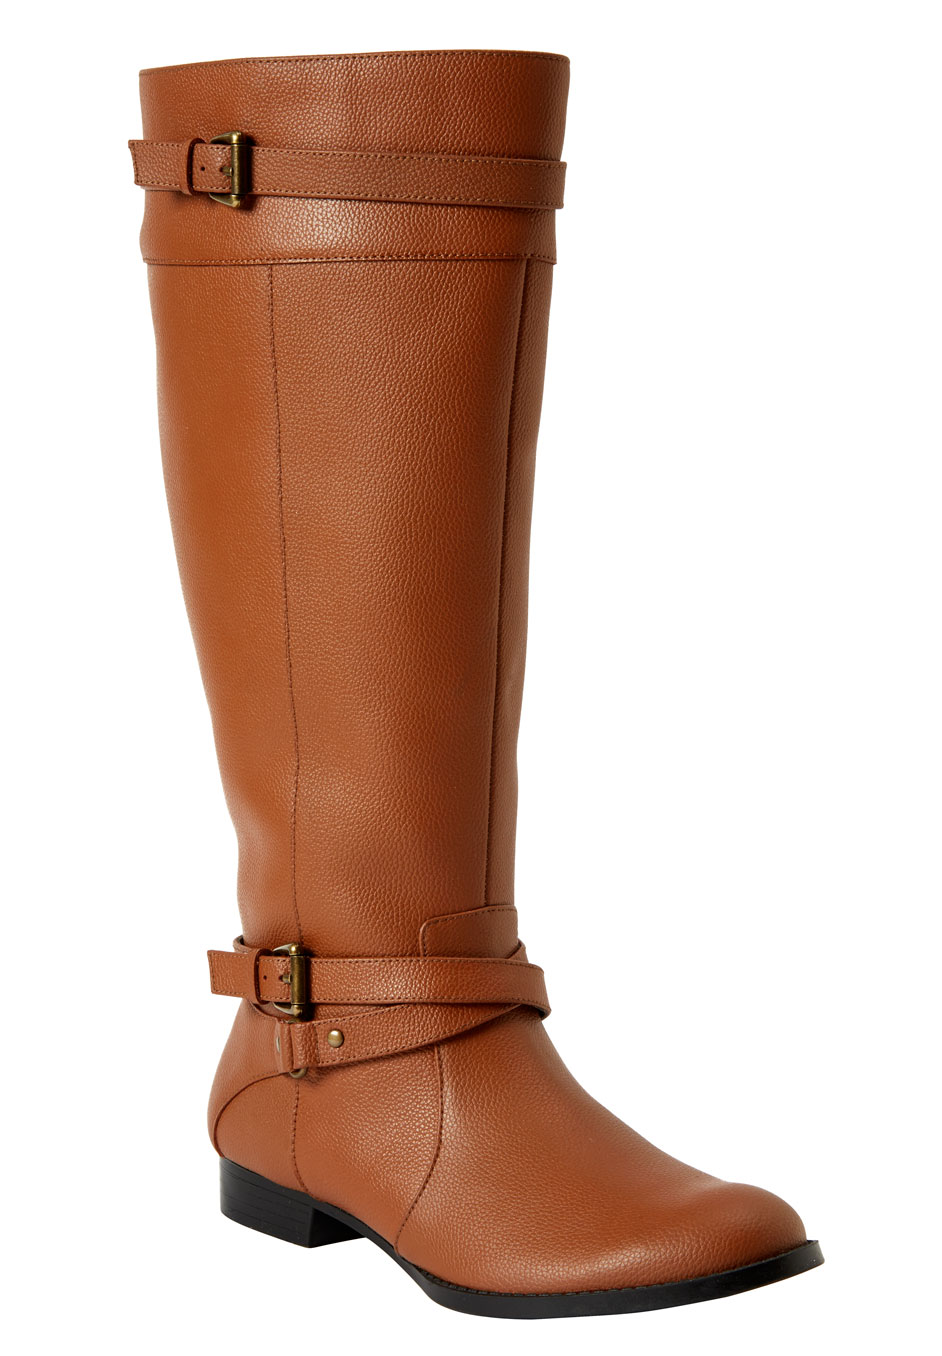 Janis Leather Wide Calf Boot by Comfortview®, COGNAC, hi-res